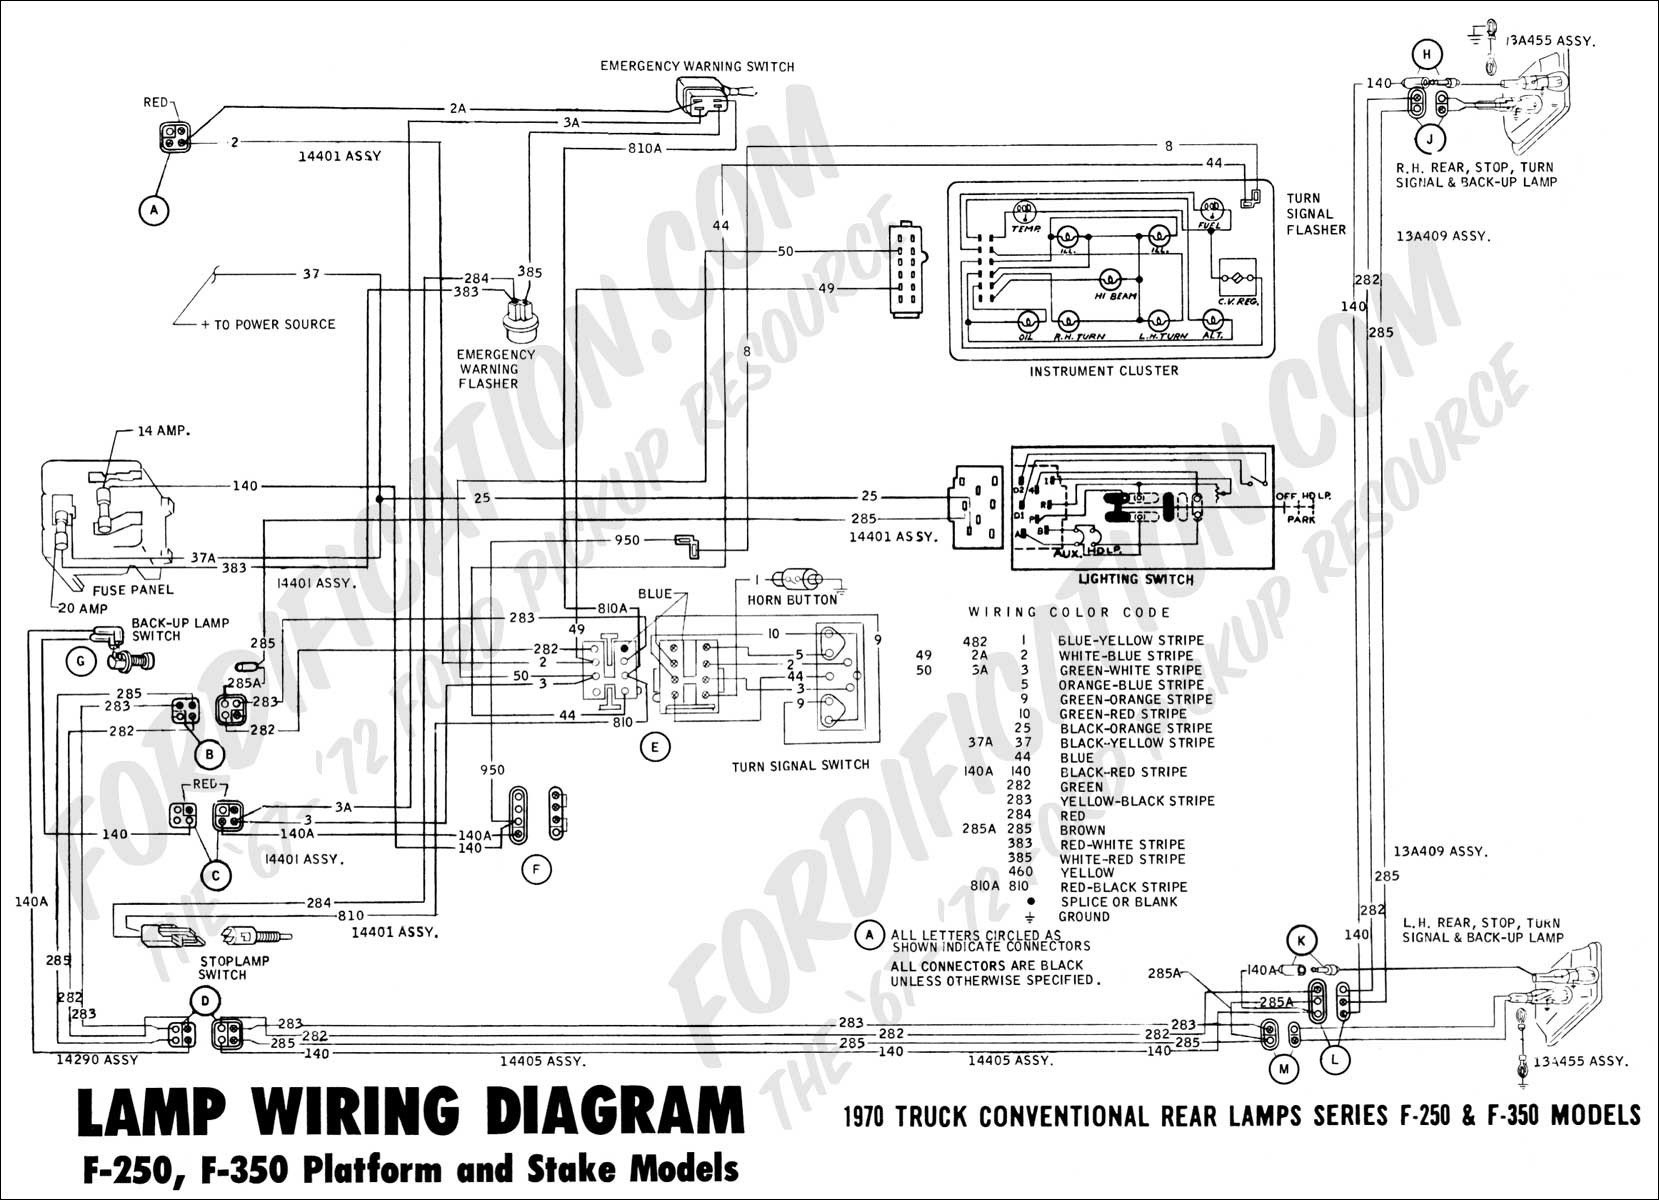 2005 F350 Trailer Wiring Diagram - Wiring Schematics F Trailer Wiring Schematic on